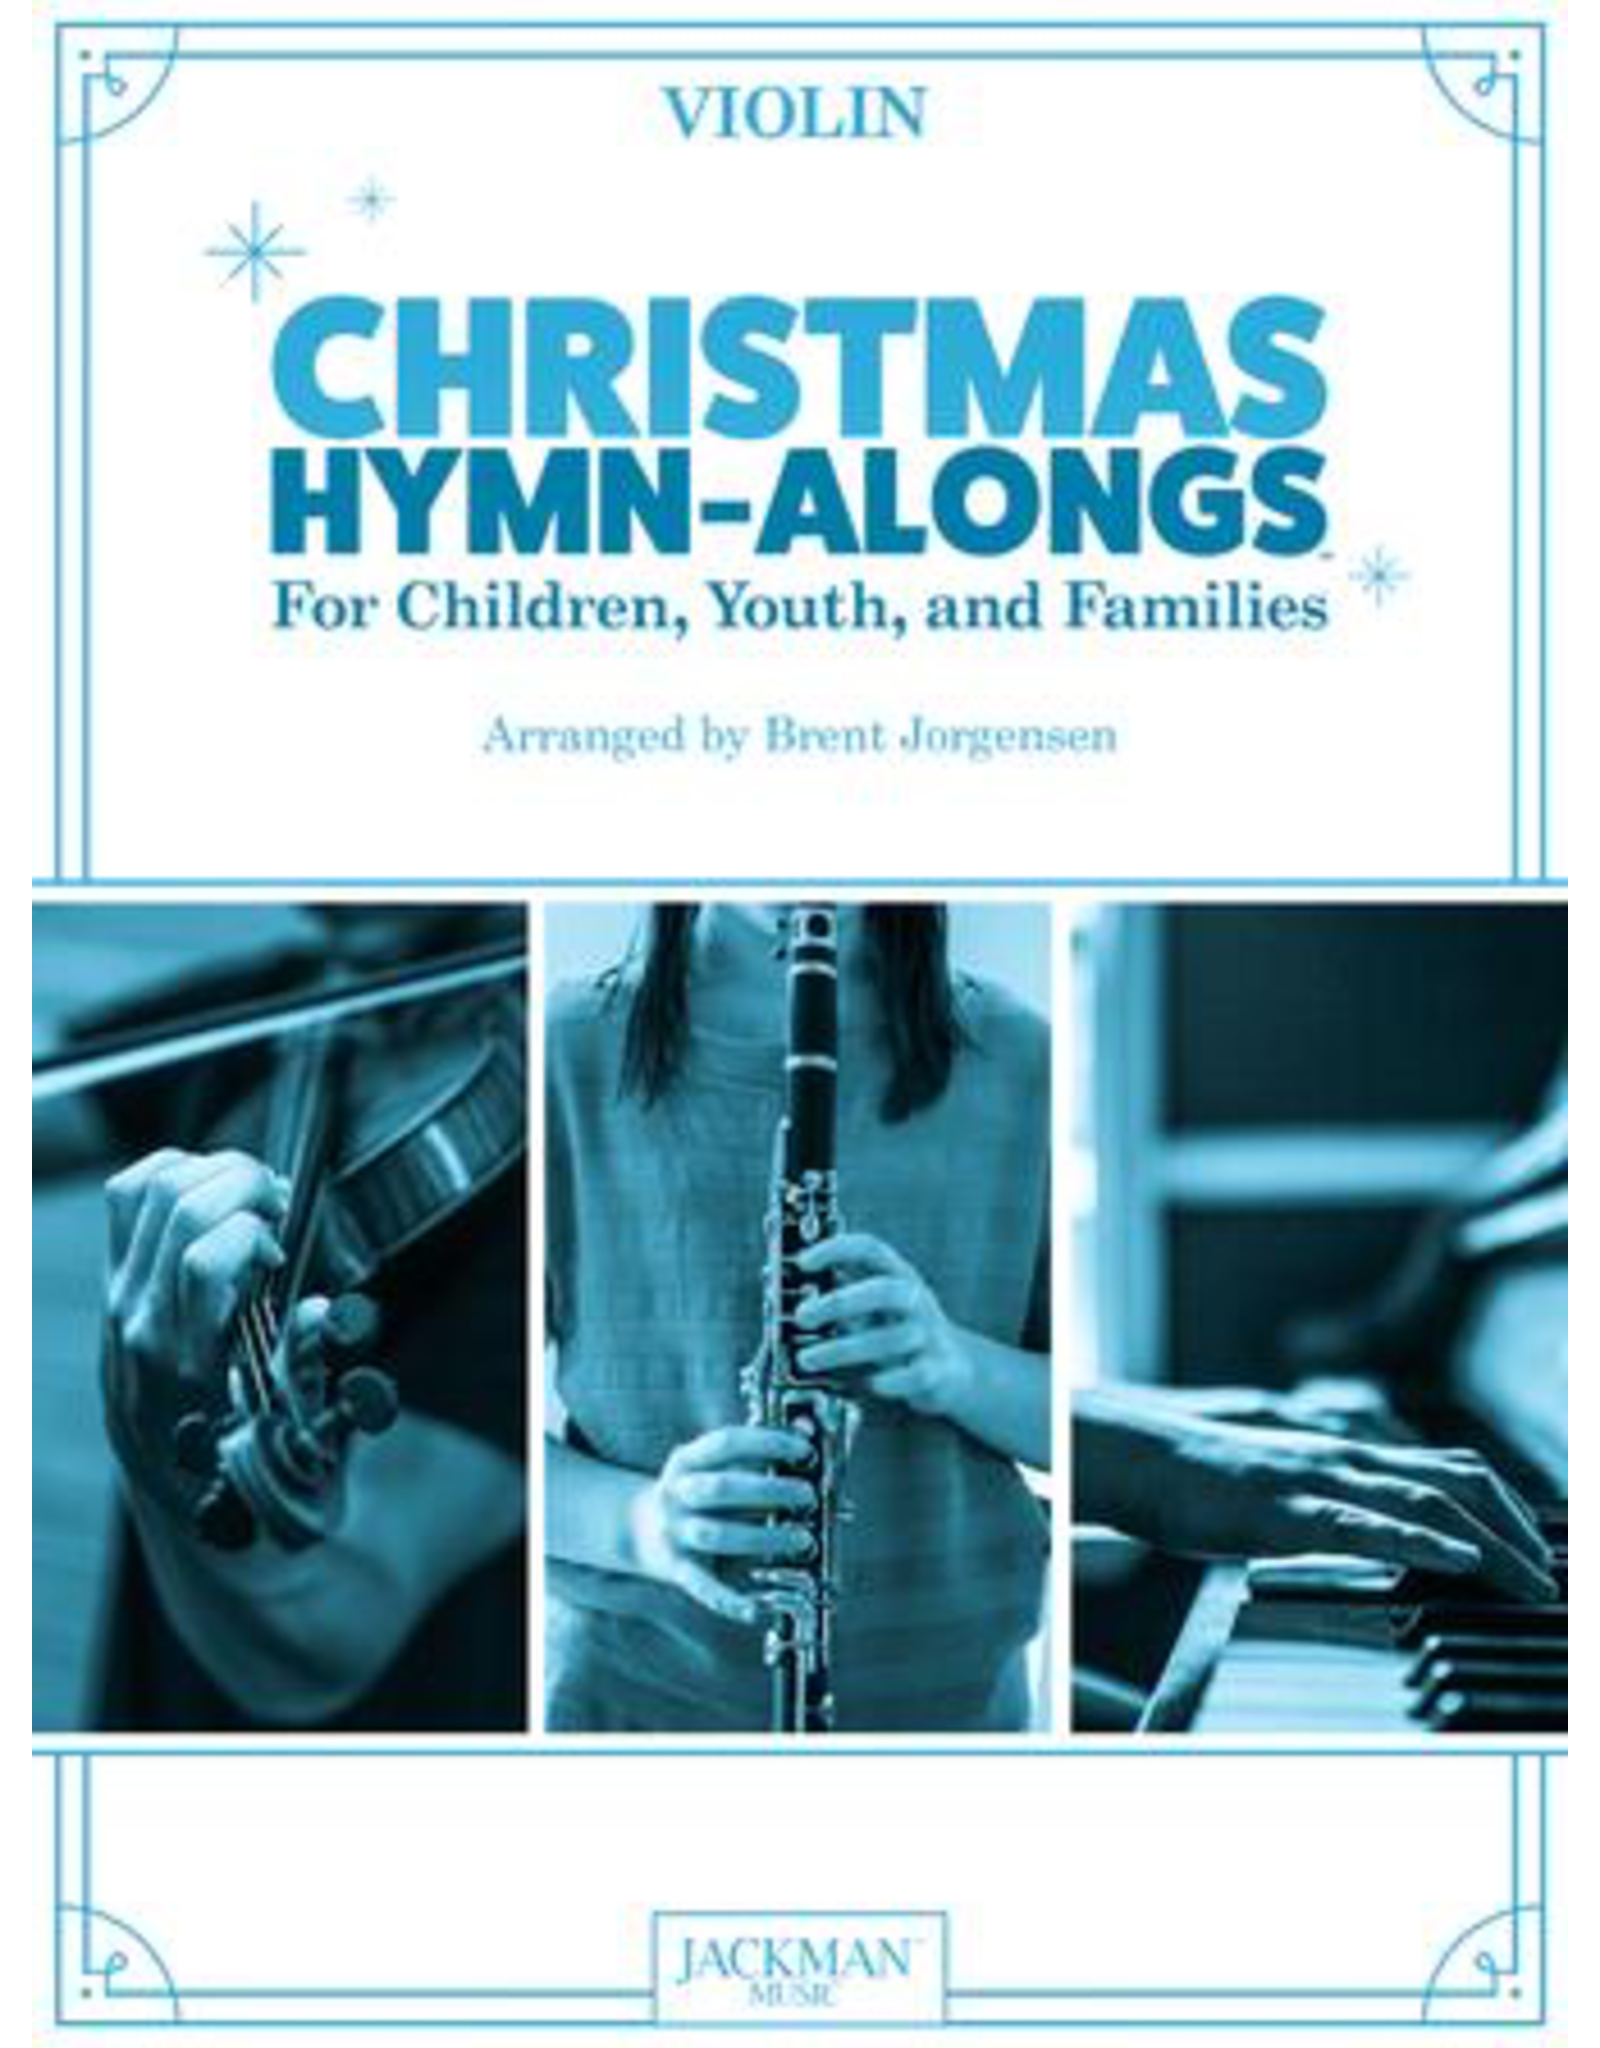 Jackman Music Christmas Hymn-Alongs Vol. 1 - arr. Brent Jorgensen - Violin